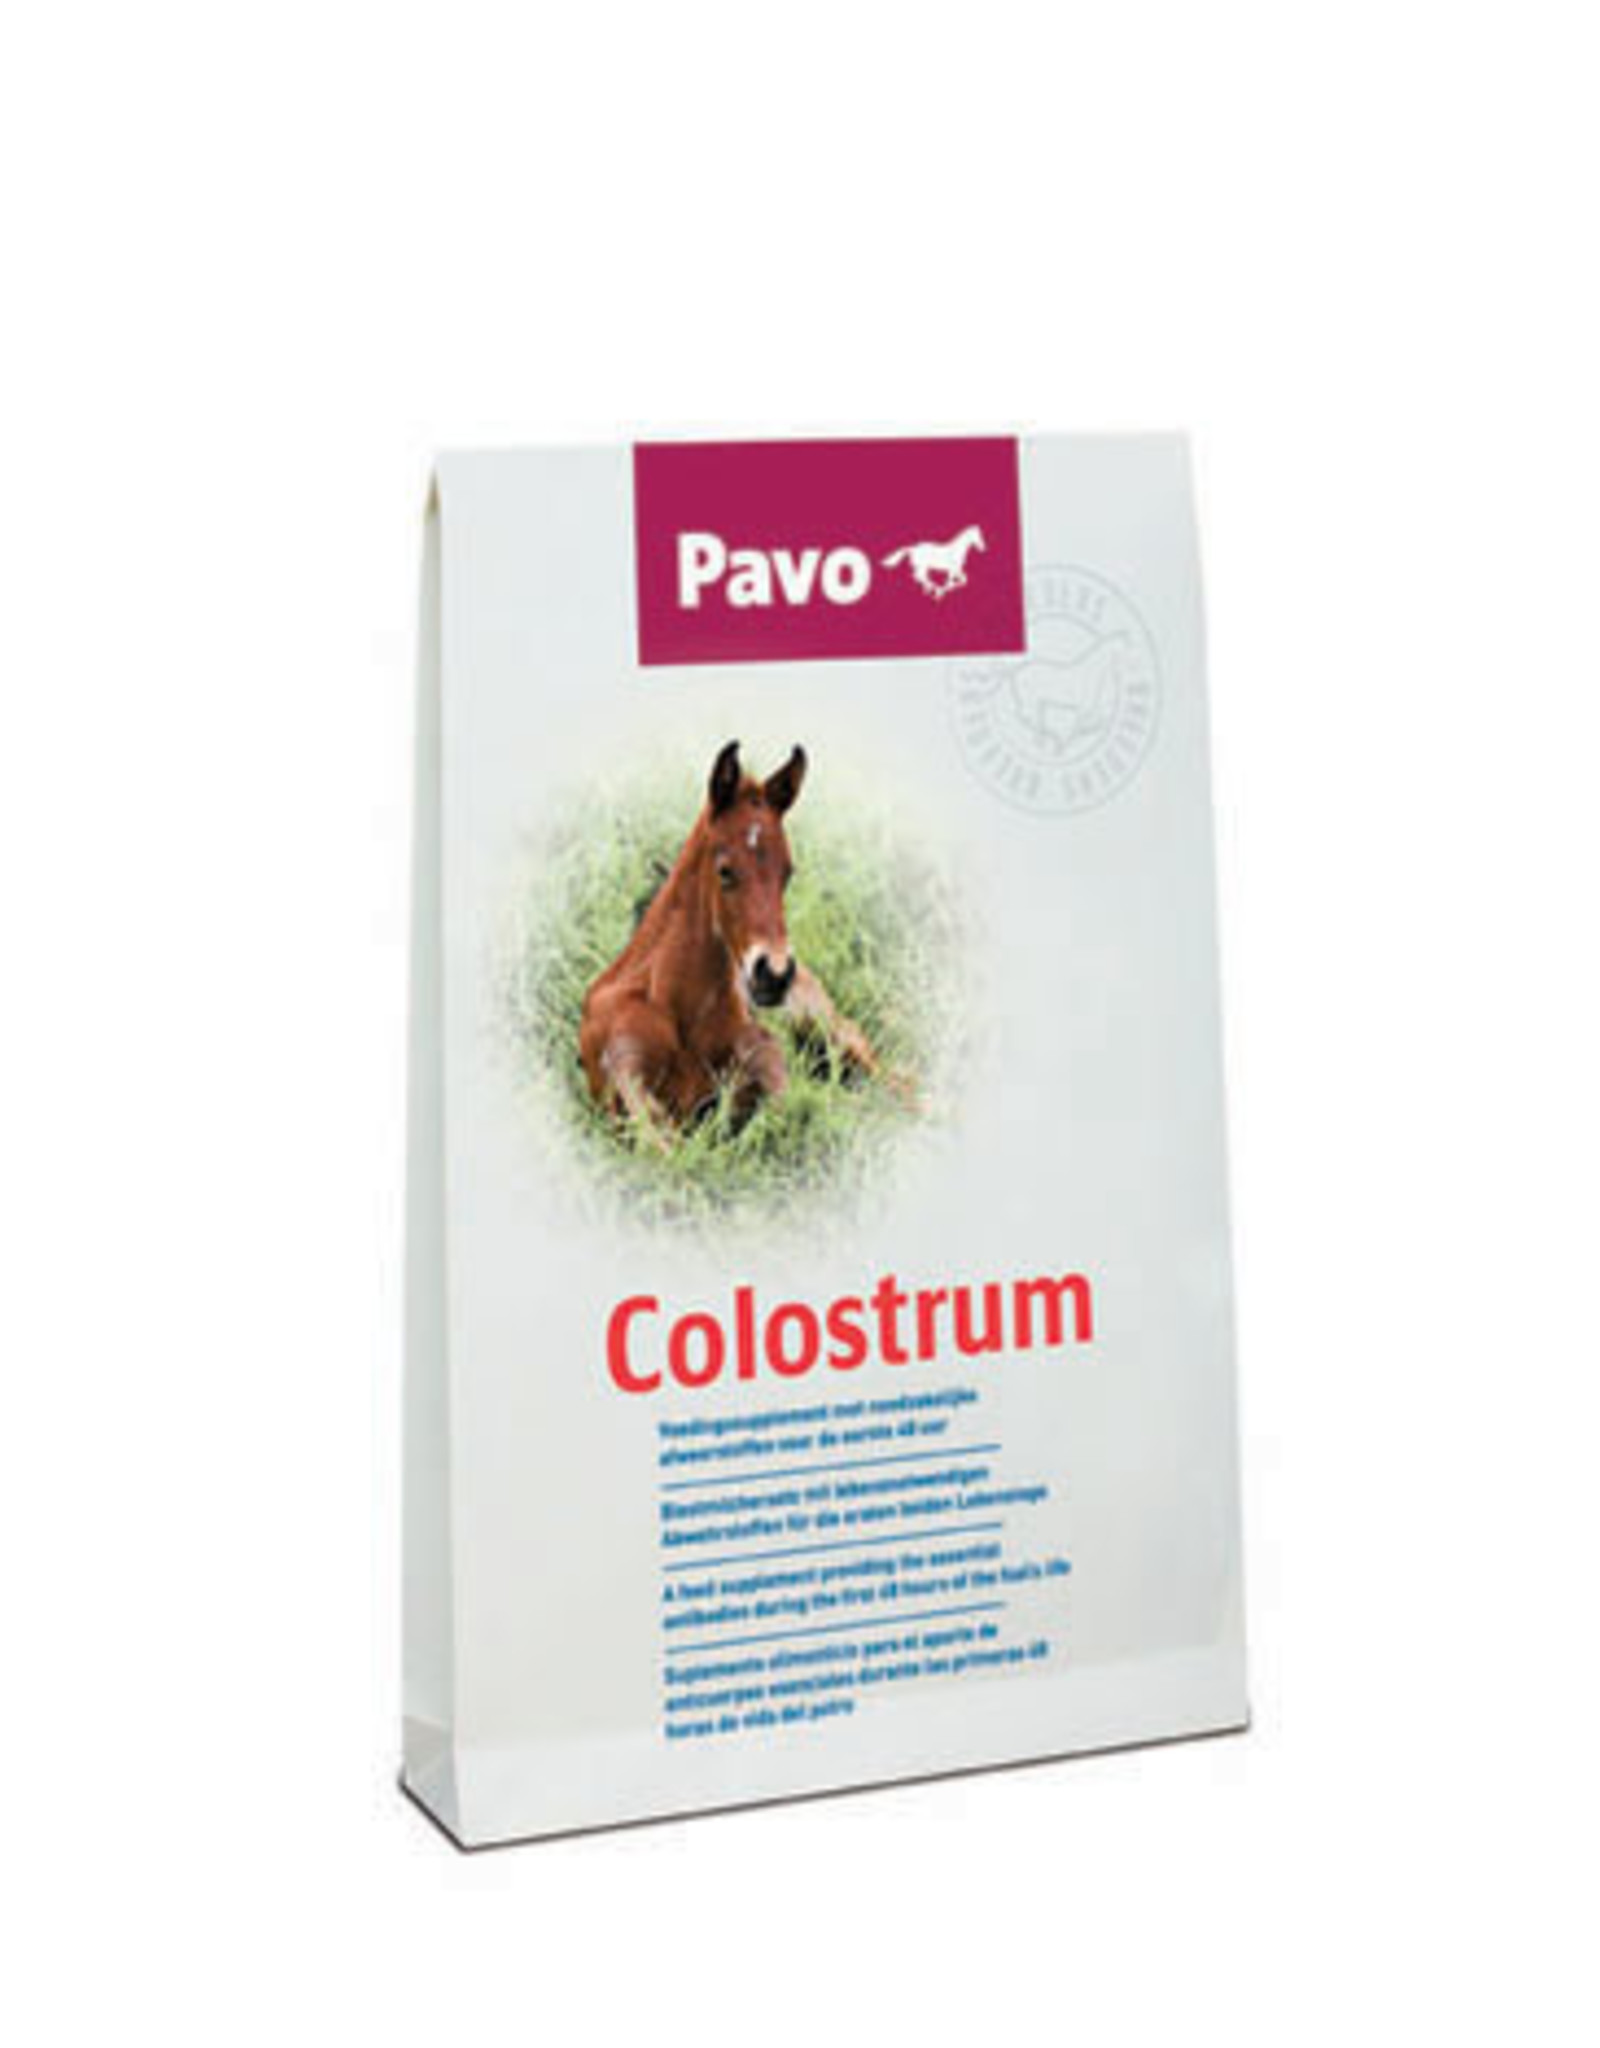 Pavo Pavo Colostrum